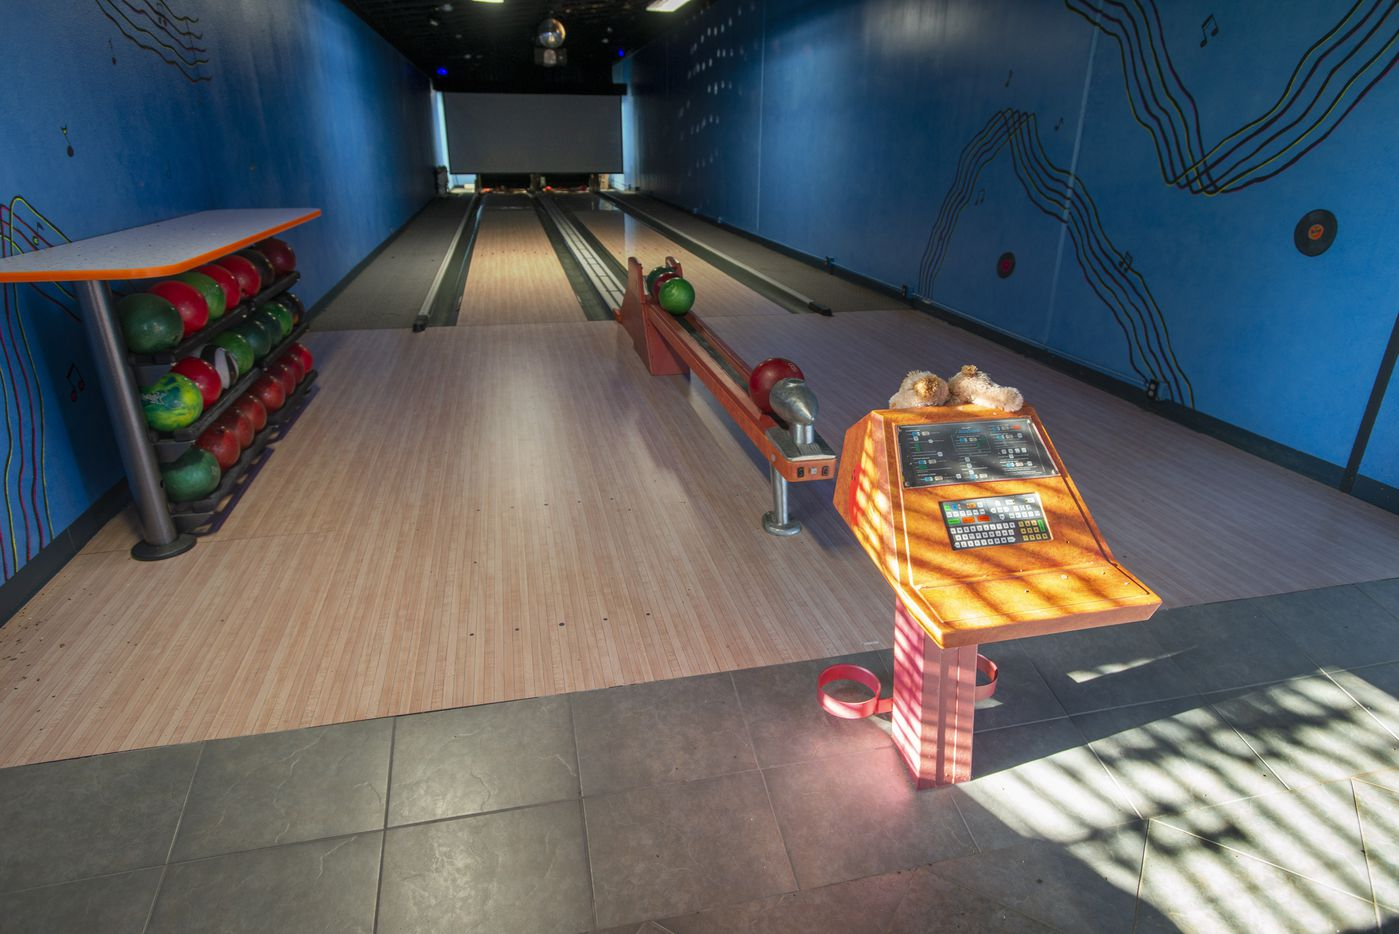 Two-lane bowling alley at 5101 Kensington Ct., in Flower Mound, Texas on August 19, 2020. (Robert W. Hart/Special Contributor)